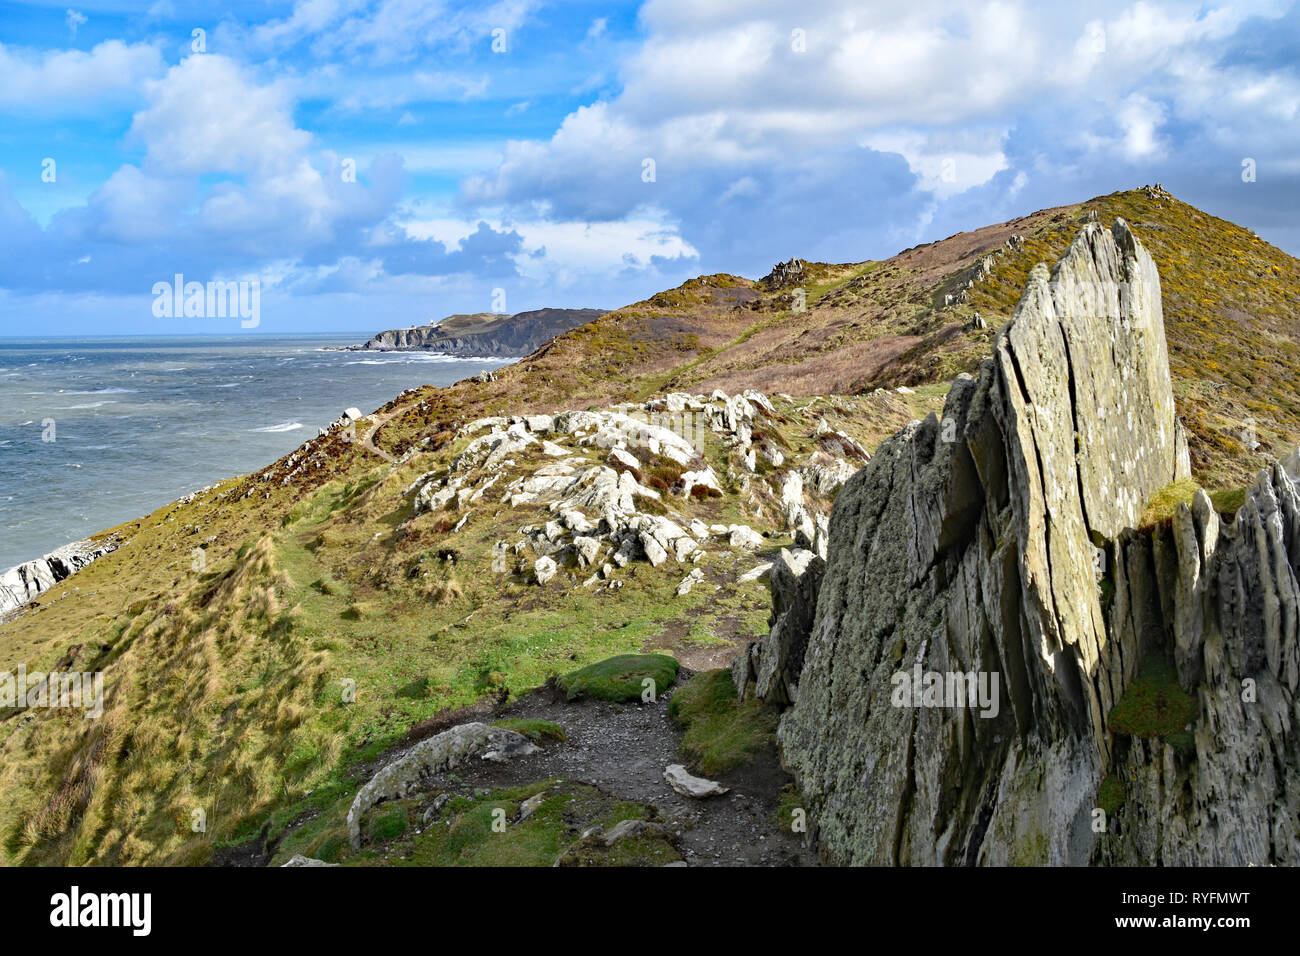 Looking east towards Bull Point from the Southwest Coast Path at Morte Point, North Devon, England. Stock Photo